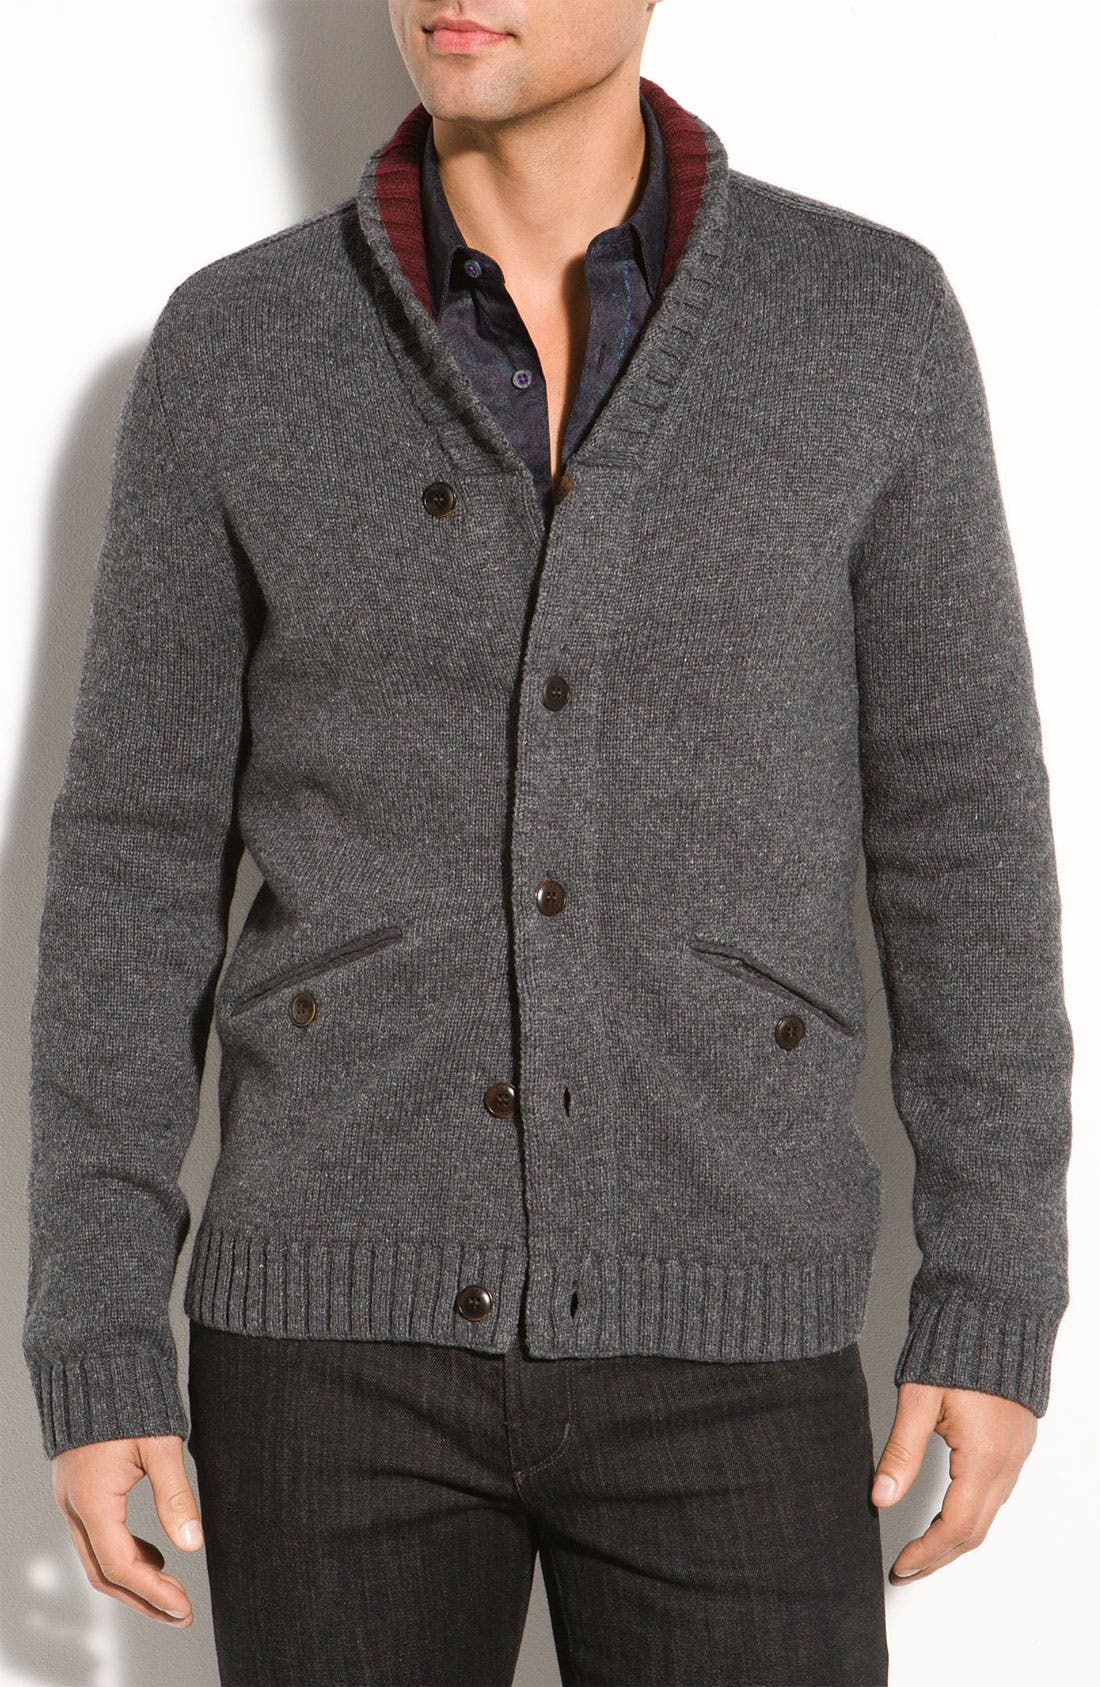 Main Image - Ted Baker London Long Sleeve Cardigan Sweater